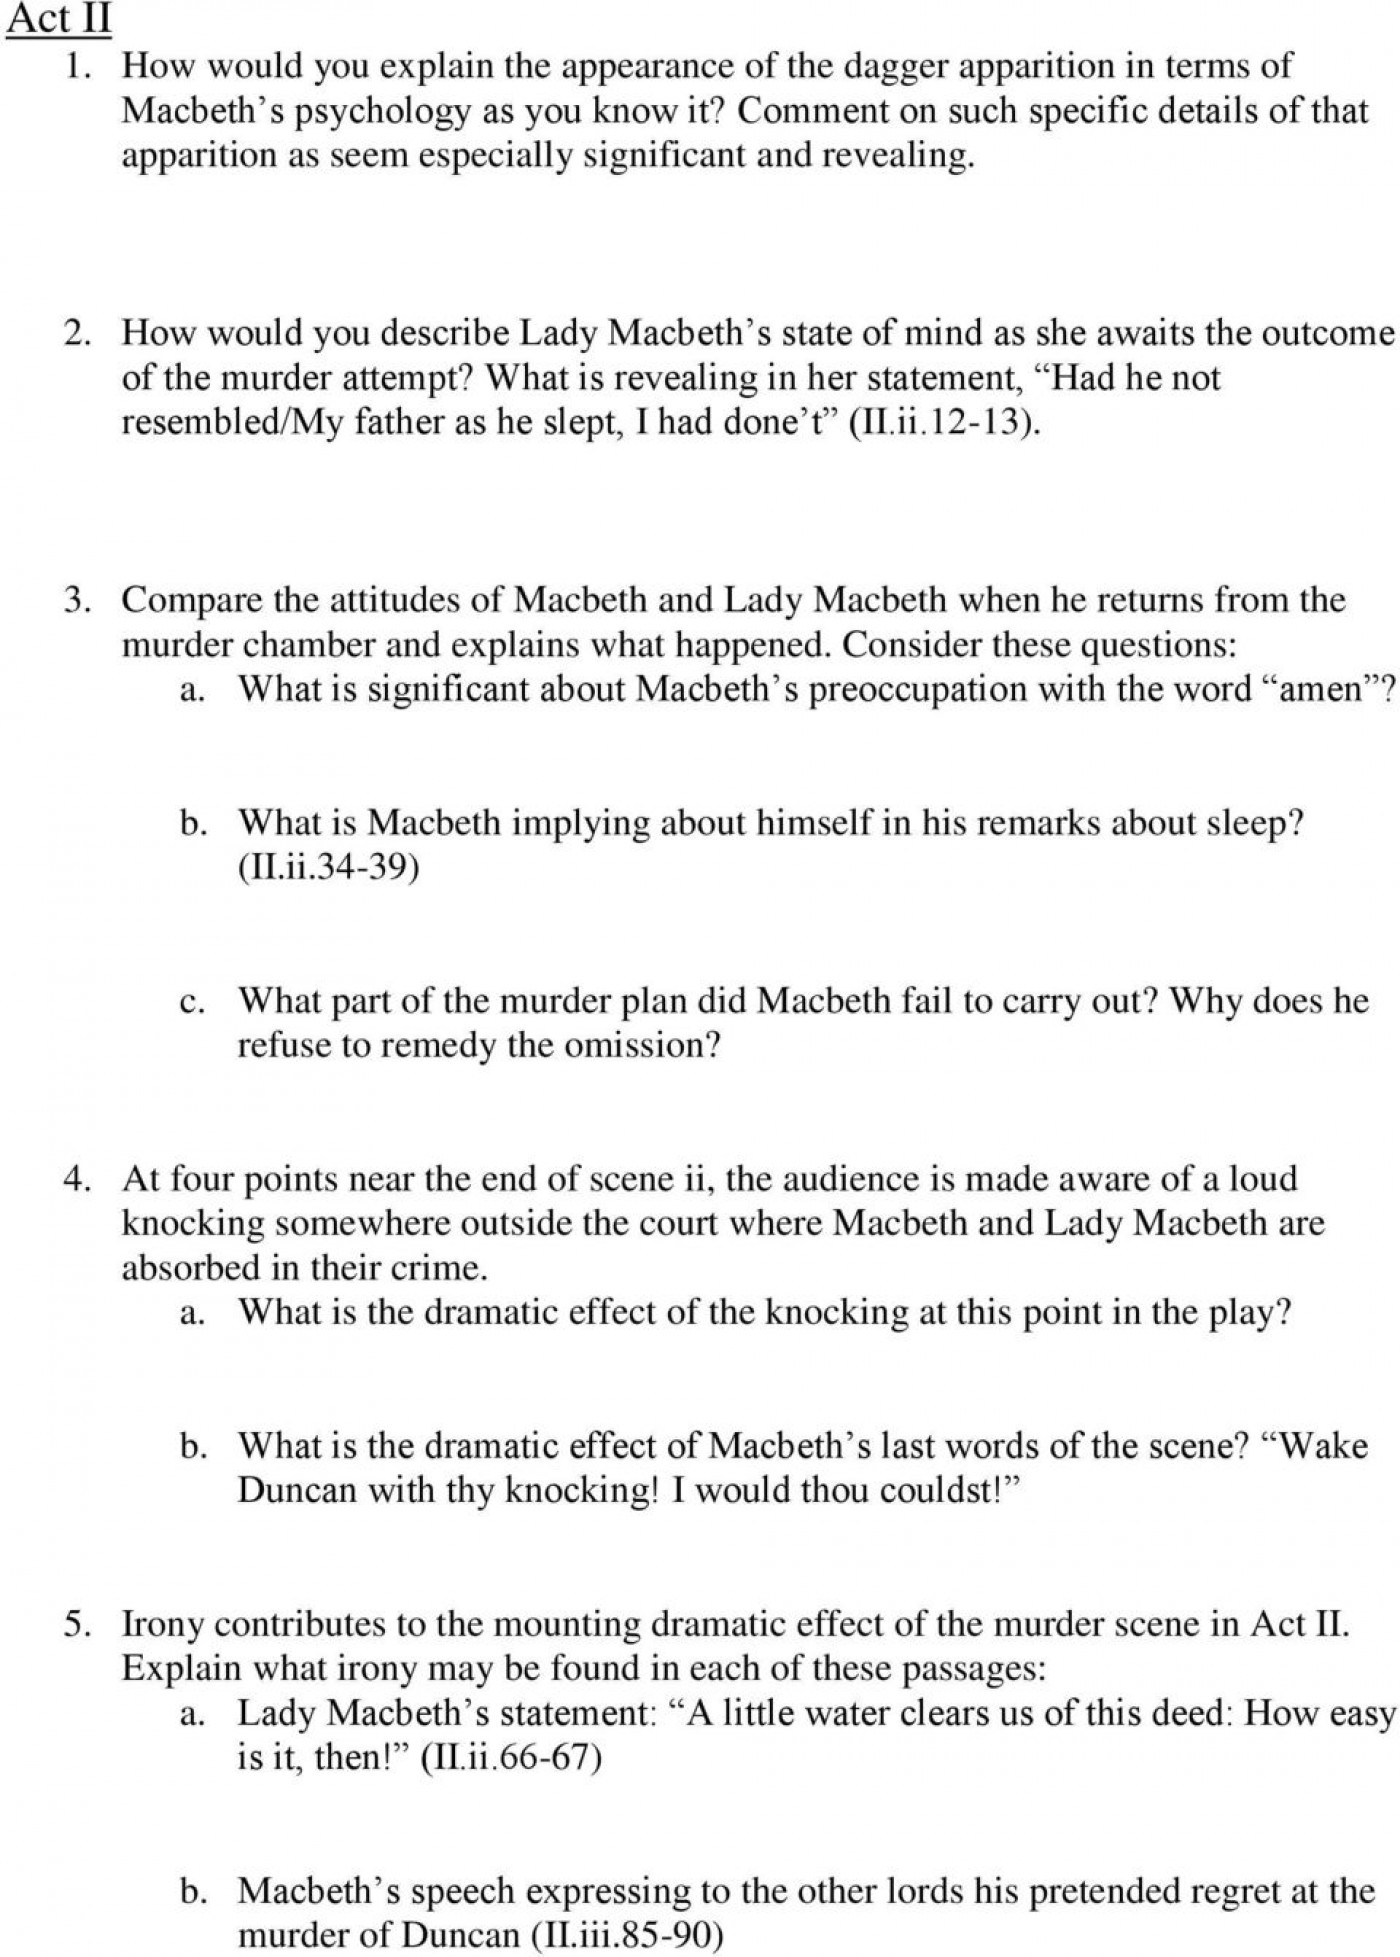 002 Macbeth Essay Questions Topics For How To Write Scholarships P